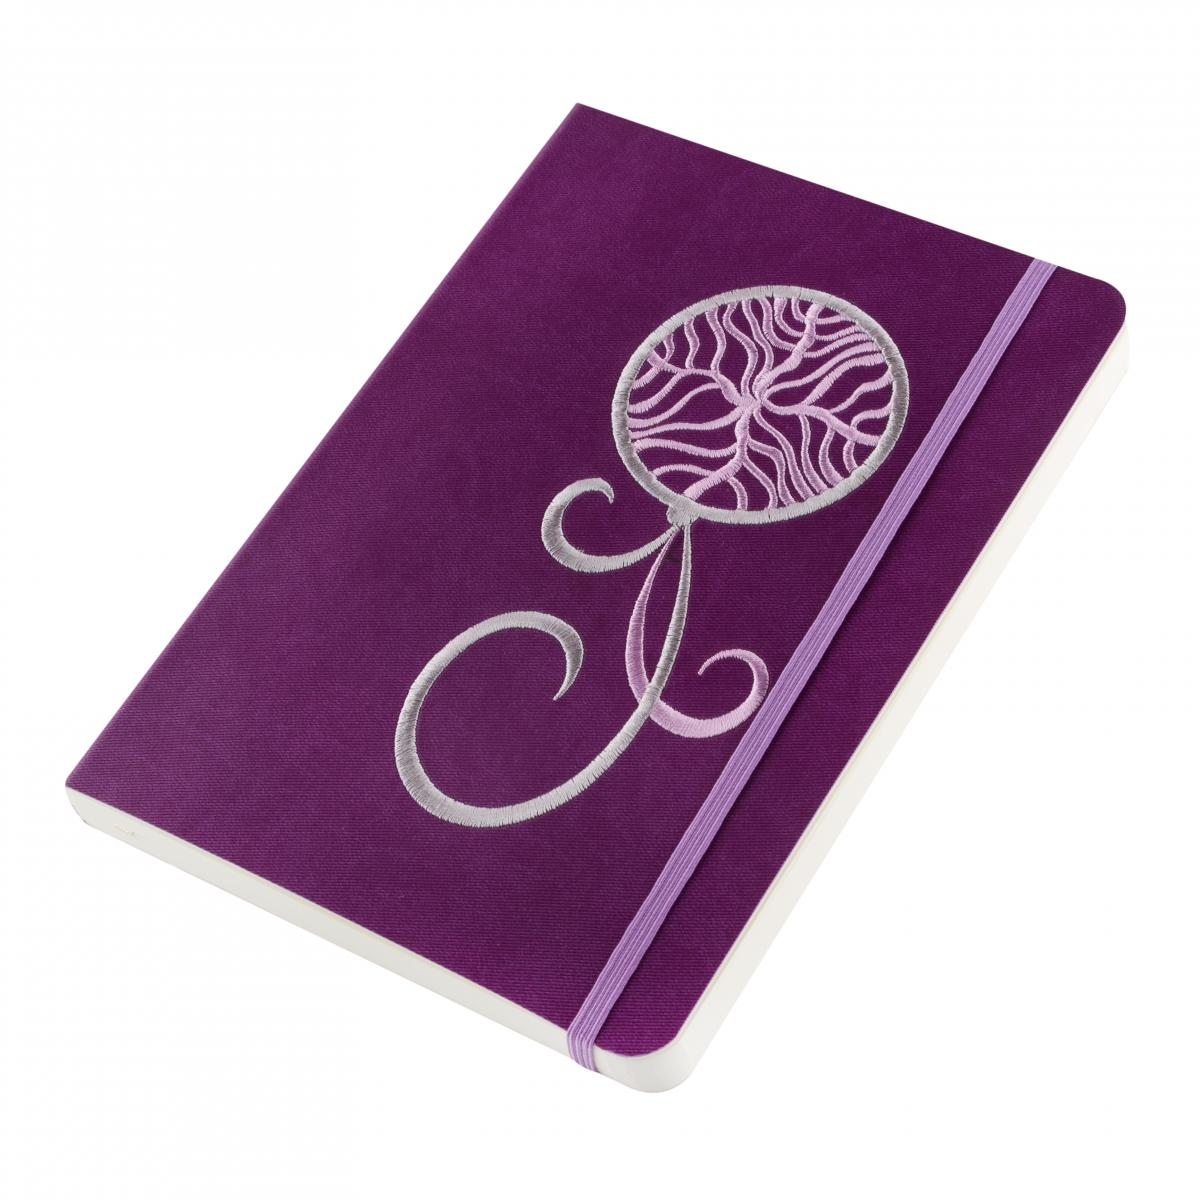 Eco-leather notebook with embroidered Dream catcher, violet. Photo №2. | Narodnyi dim Ukraine